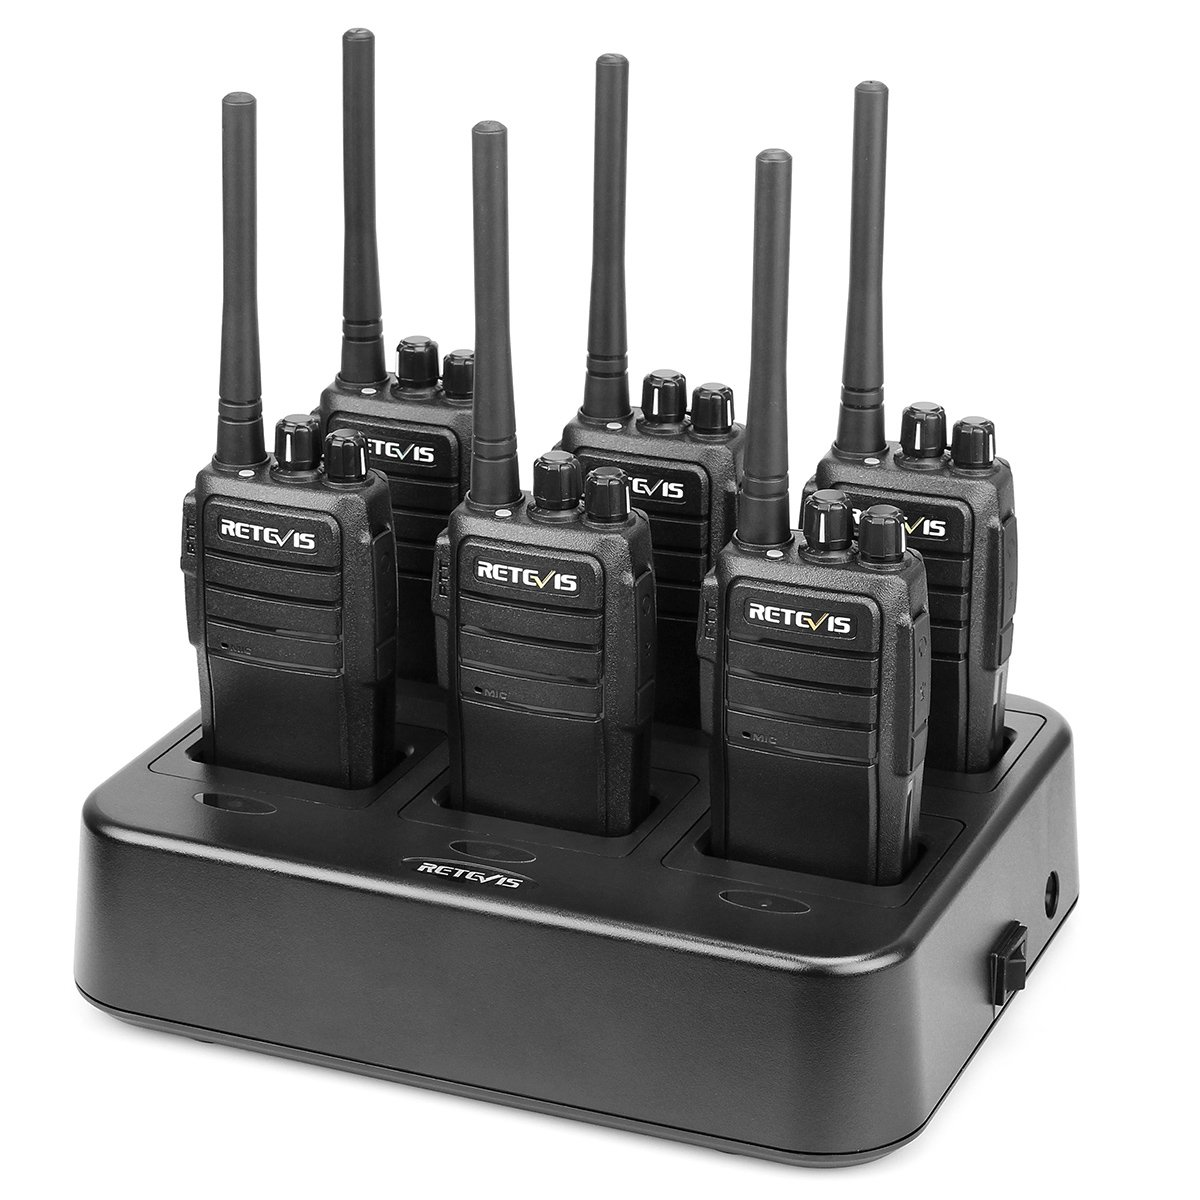 Retevis RT21 Two Way Radios Long Range FRS Walkie Talkies Rechargeable Hands Free 2 Way Radios(6 Pack) with Six-Way Multi Gang Charger by Retevis